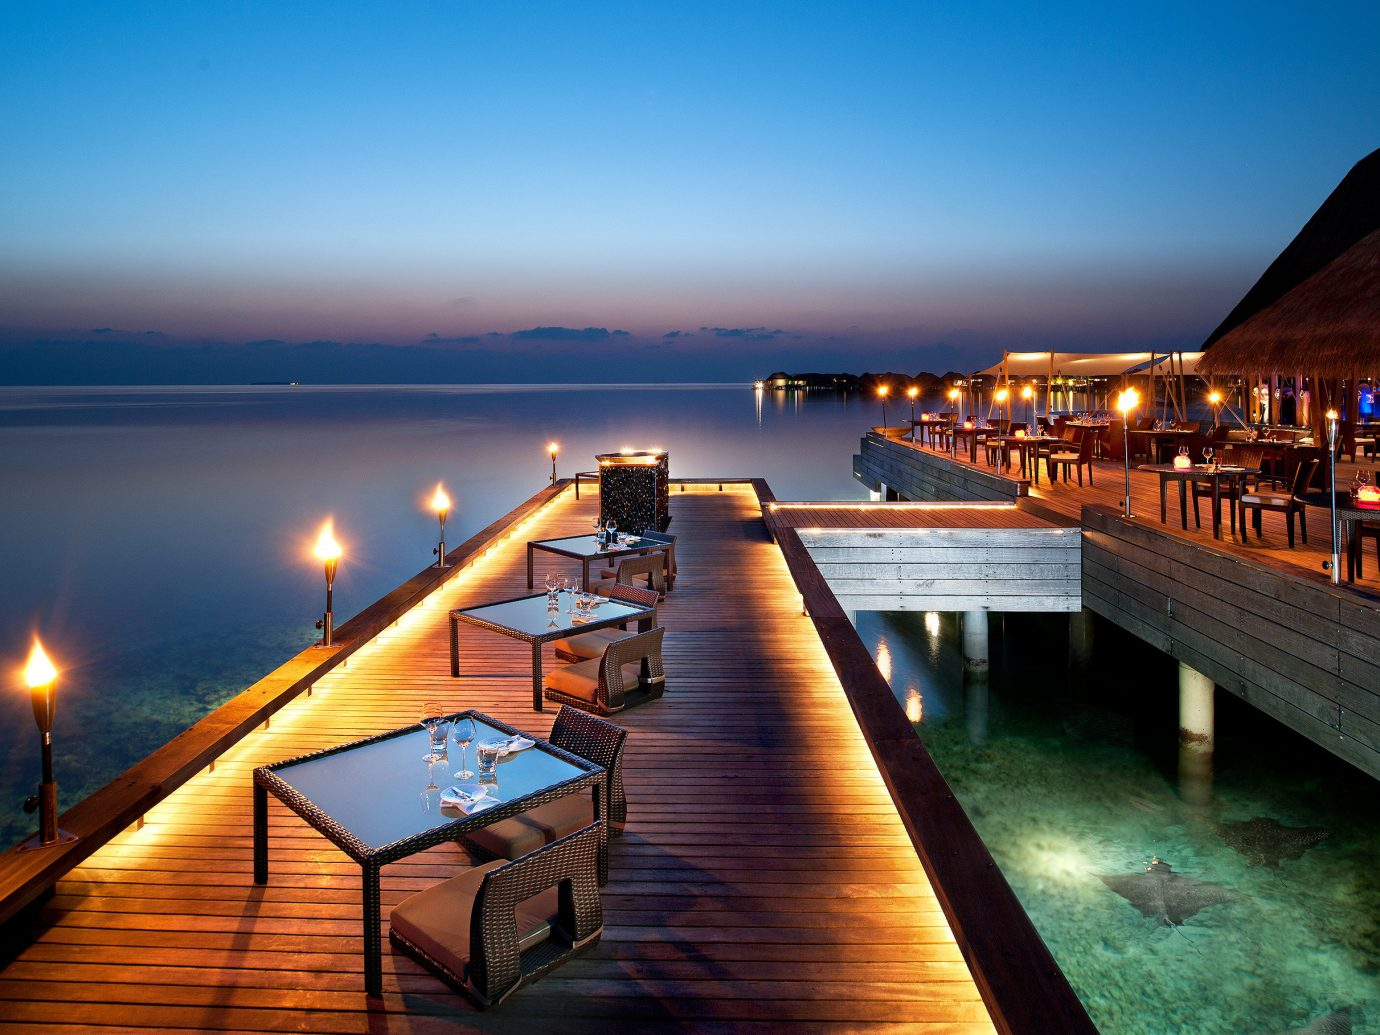 Trip Ideas sky water scene outdoor pier Sea reflection Ocean night vacation evening dock dusk Sunset bay Resort marina